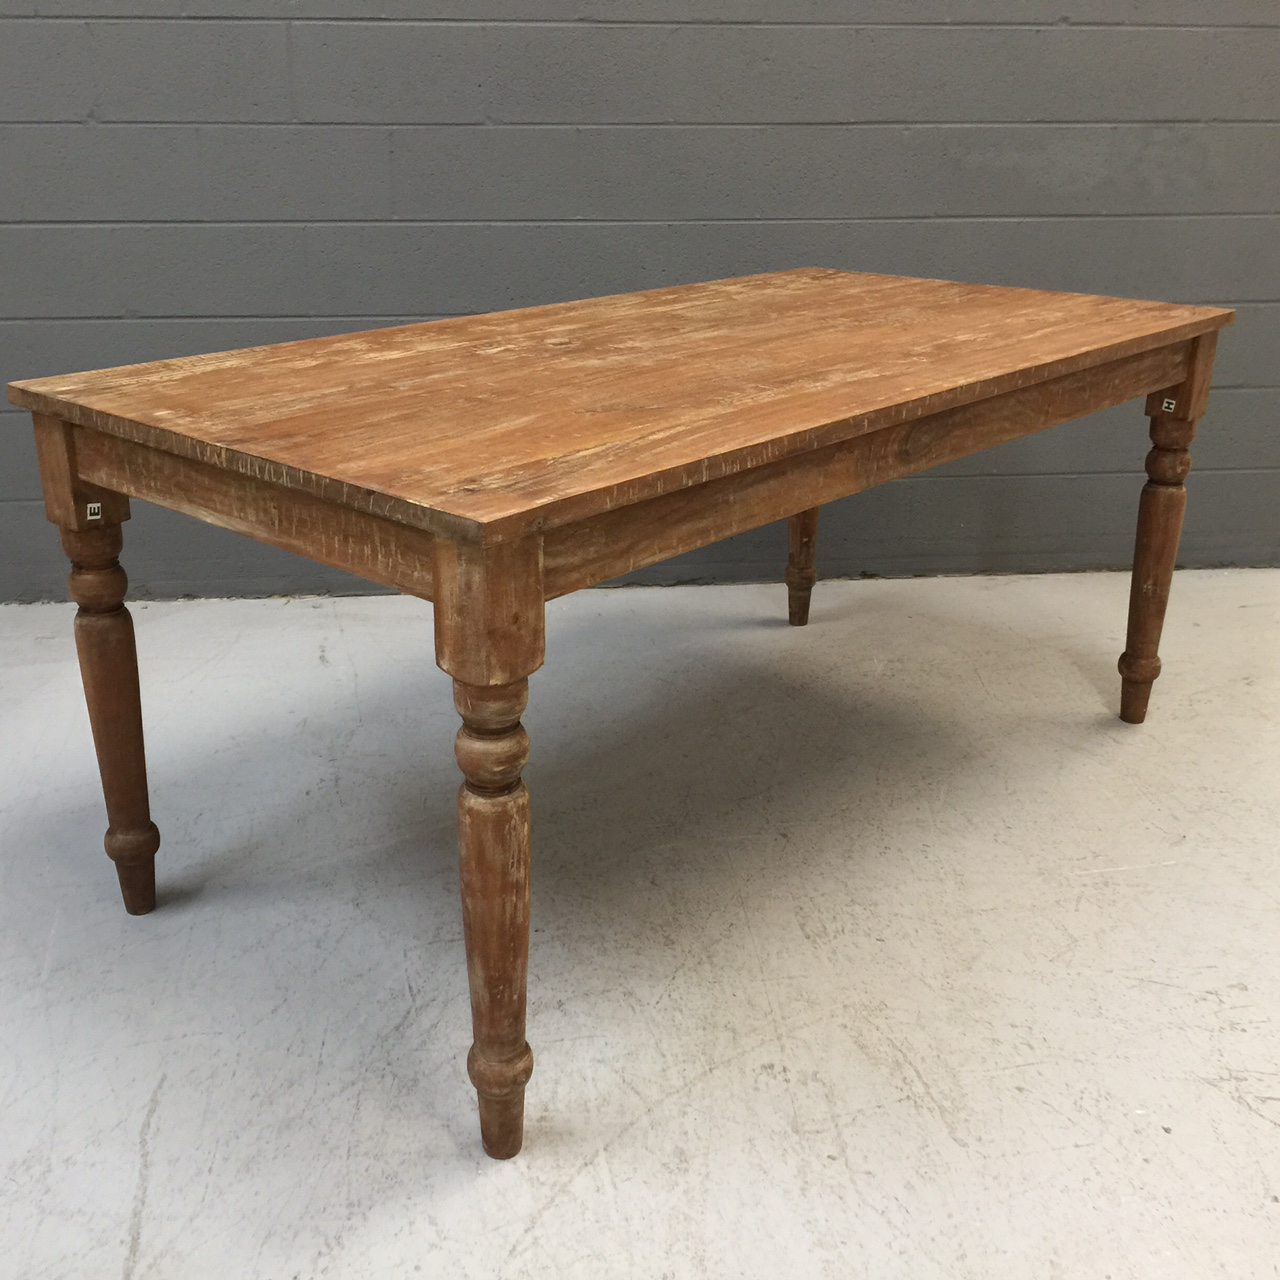 Farm dining table nadeau nashville for Dining table nashville tn